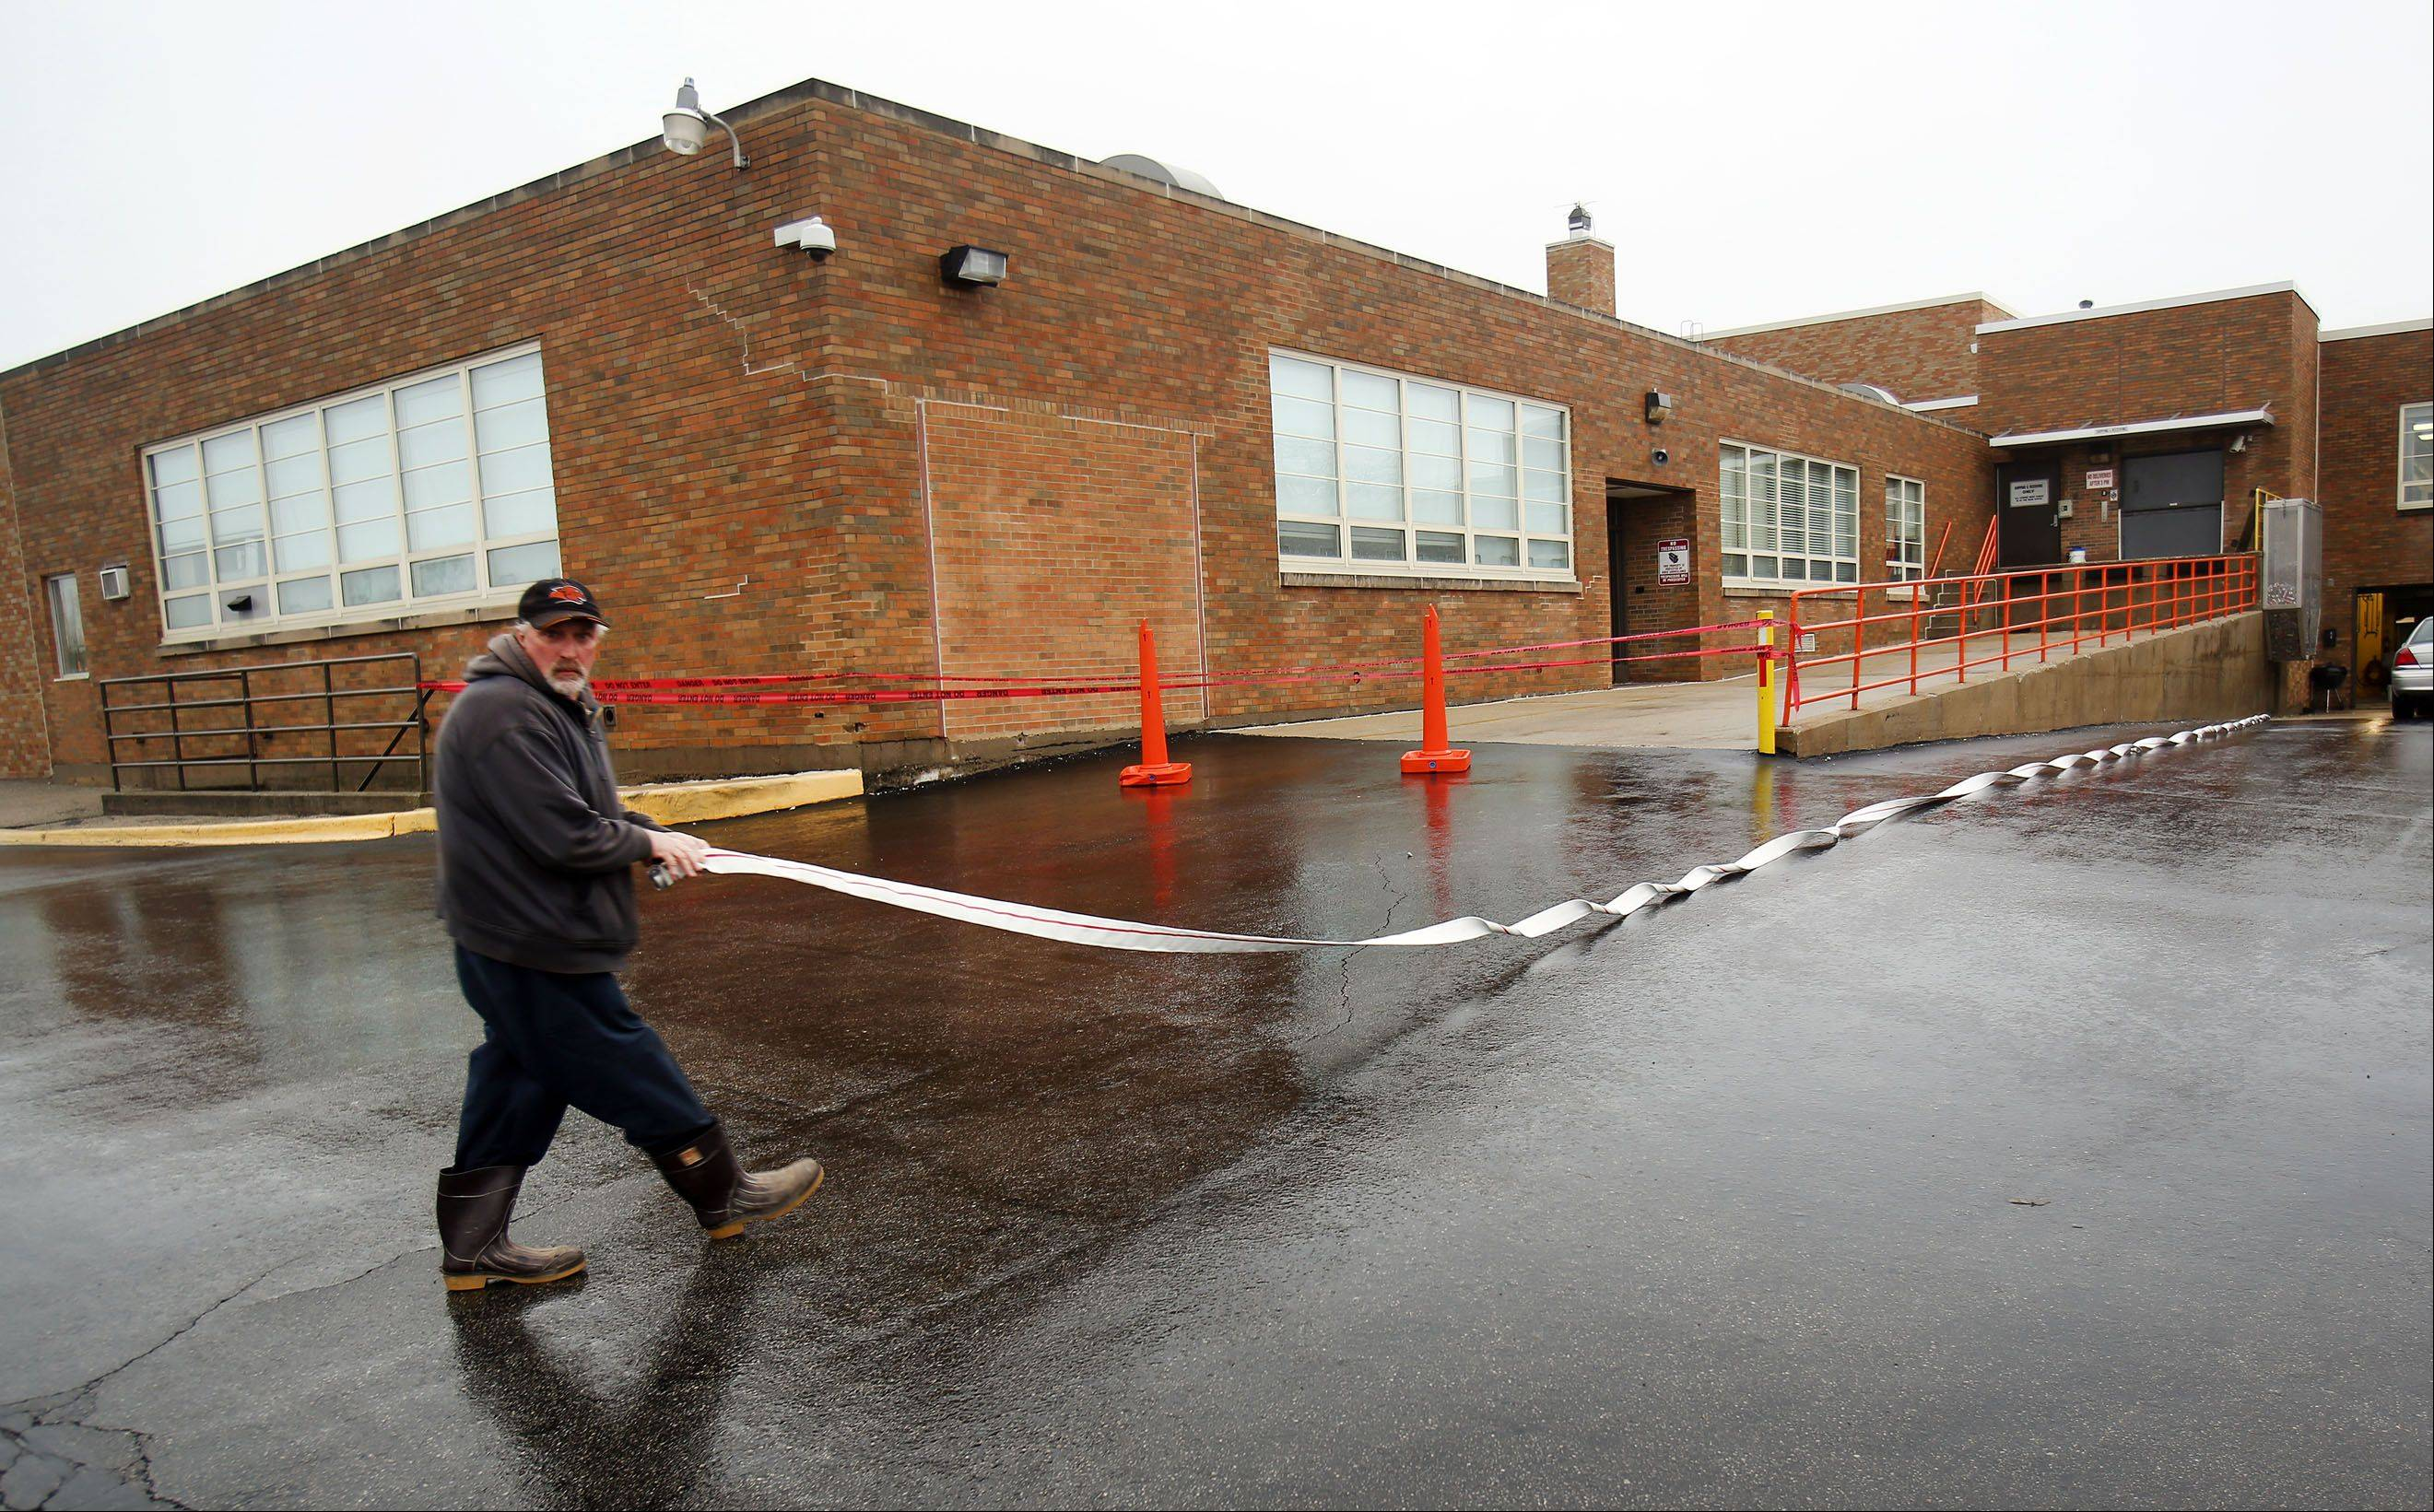 Libertyville High School subbasement flooded, classes canceled